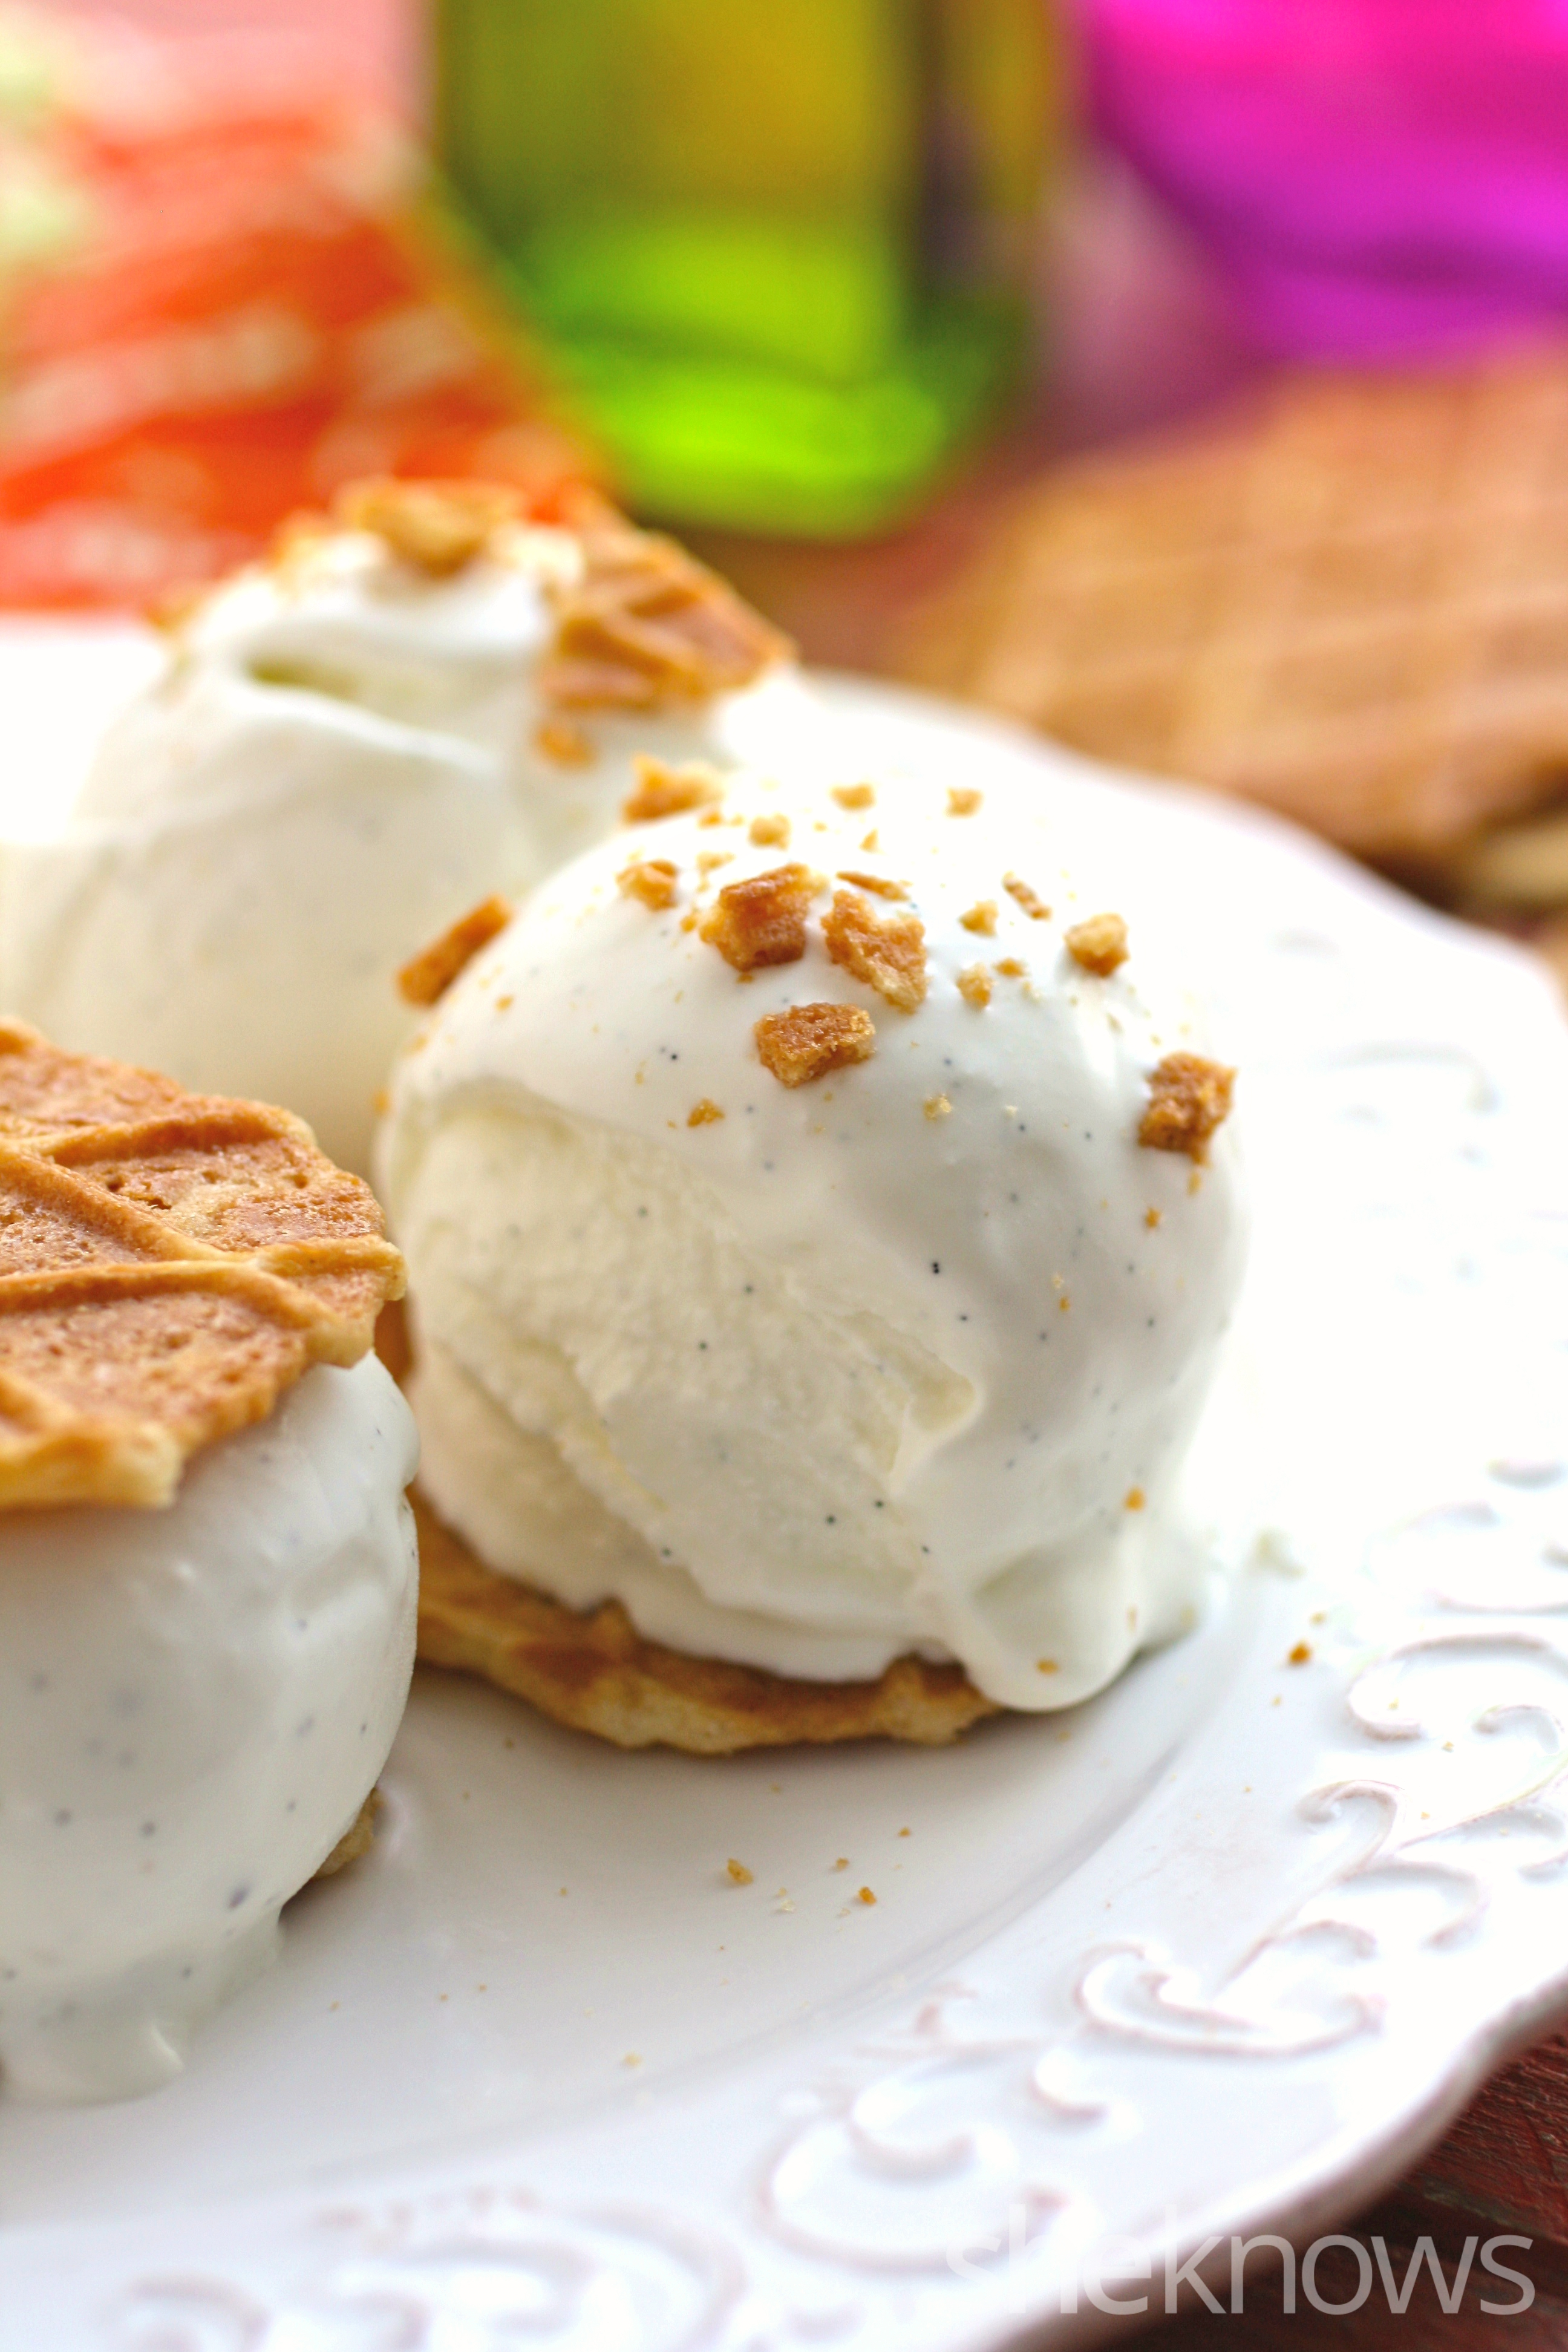 Try a sophisticated treat with olive oil and vanilla bean ice cream sandwiches